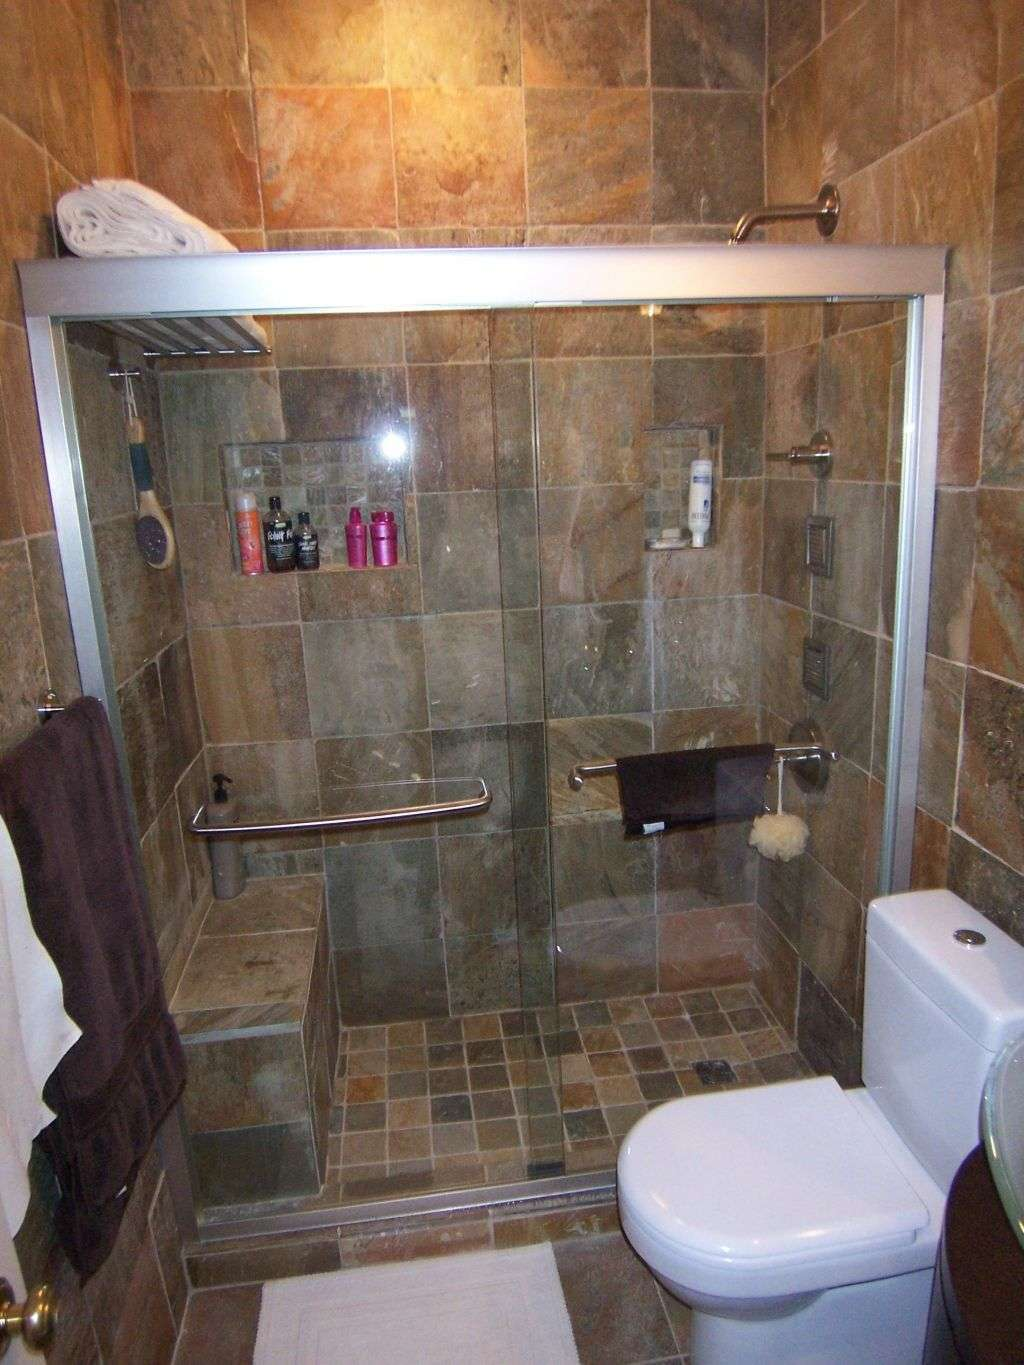 40 wonderful pictures and ideas of 1920s bathroom tile designs - Bathroom small design ...